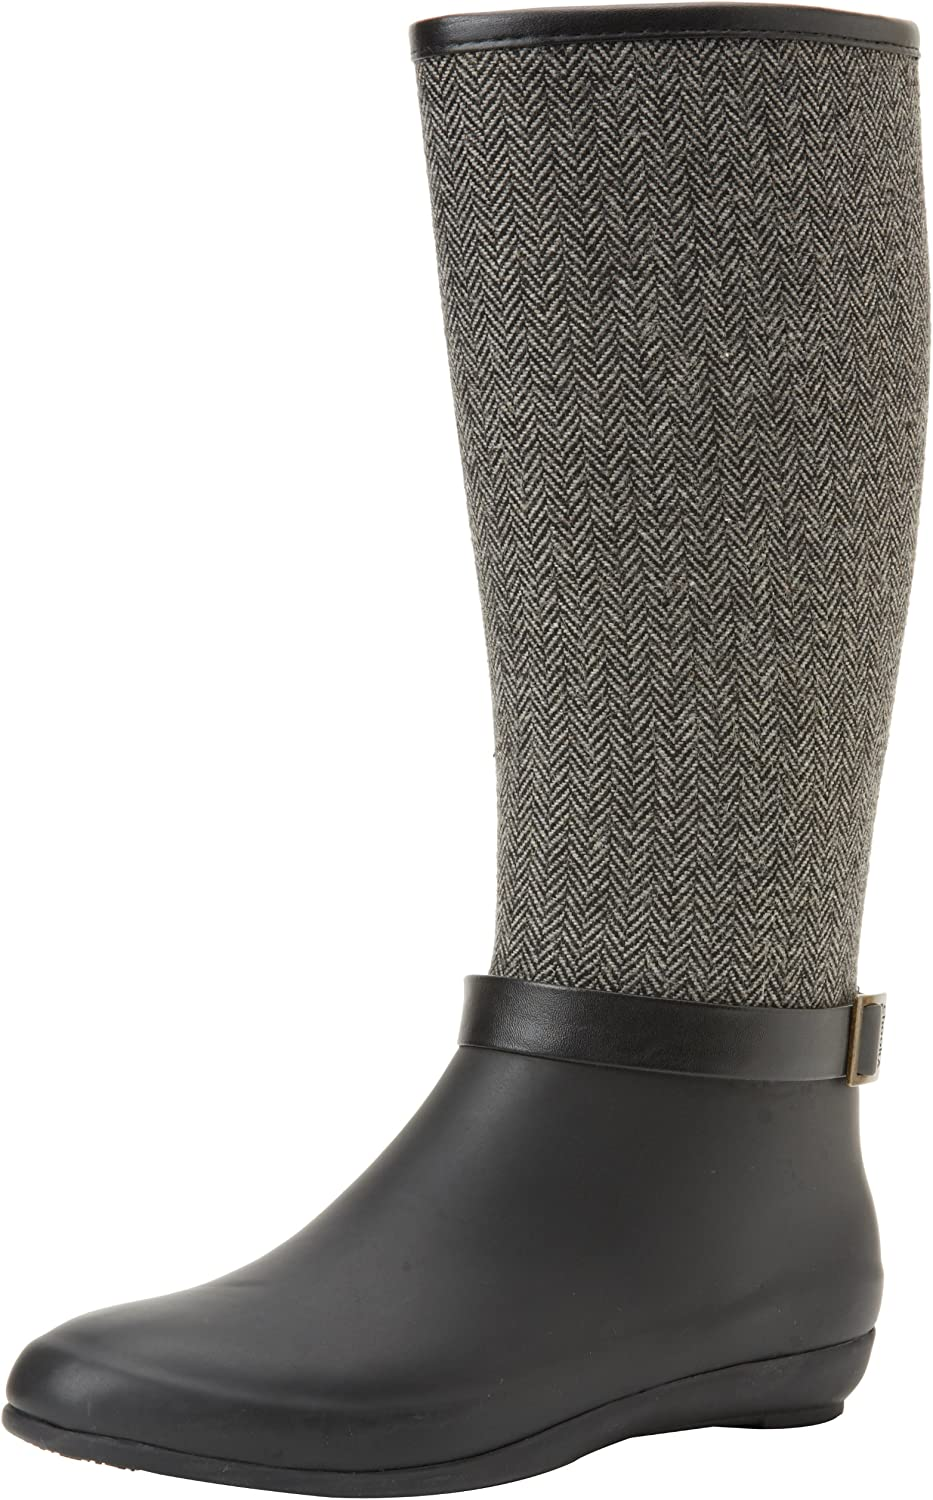 Cheap mail order sales Chooka Women's Boot Excellent Riding